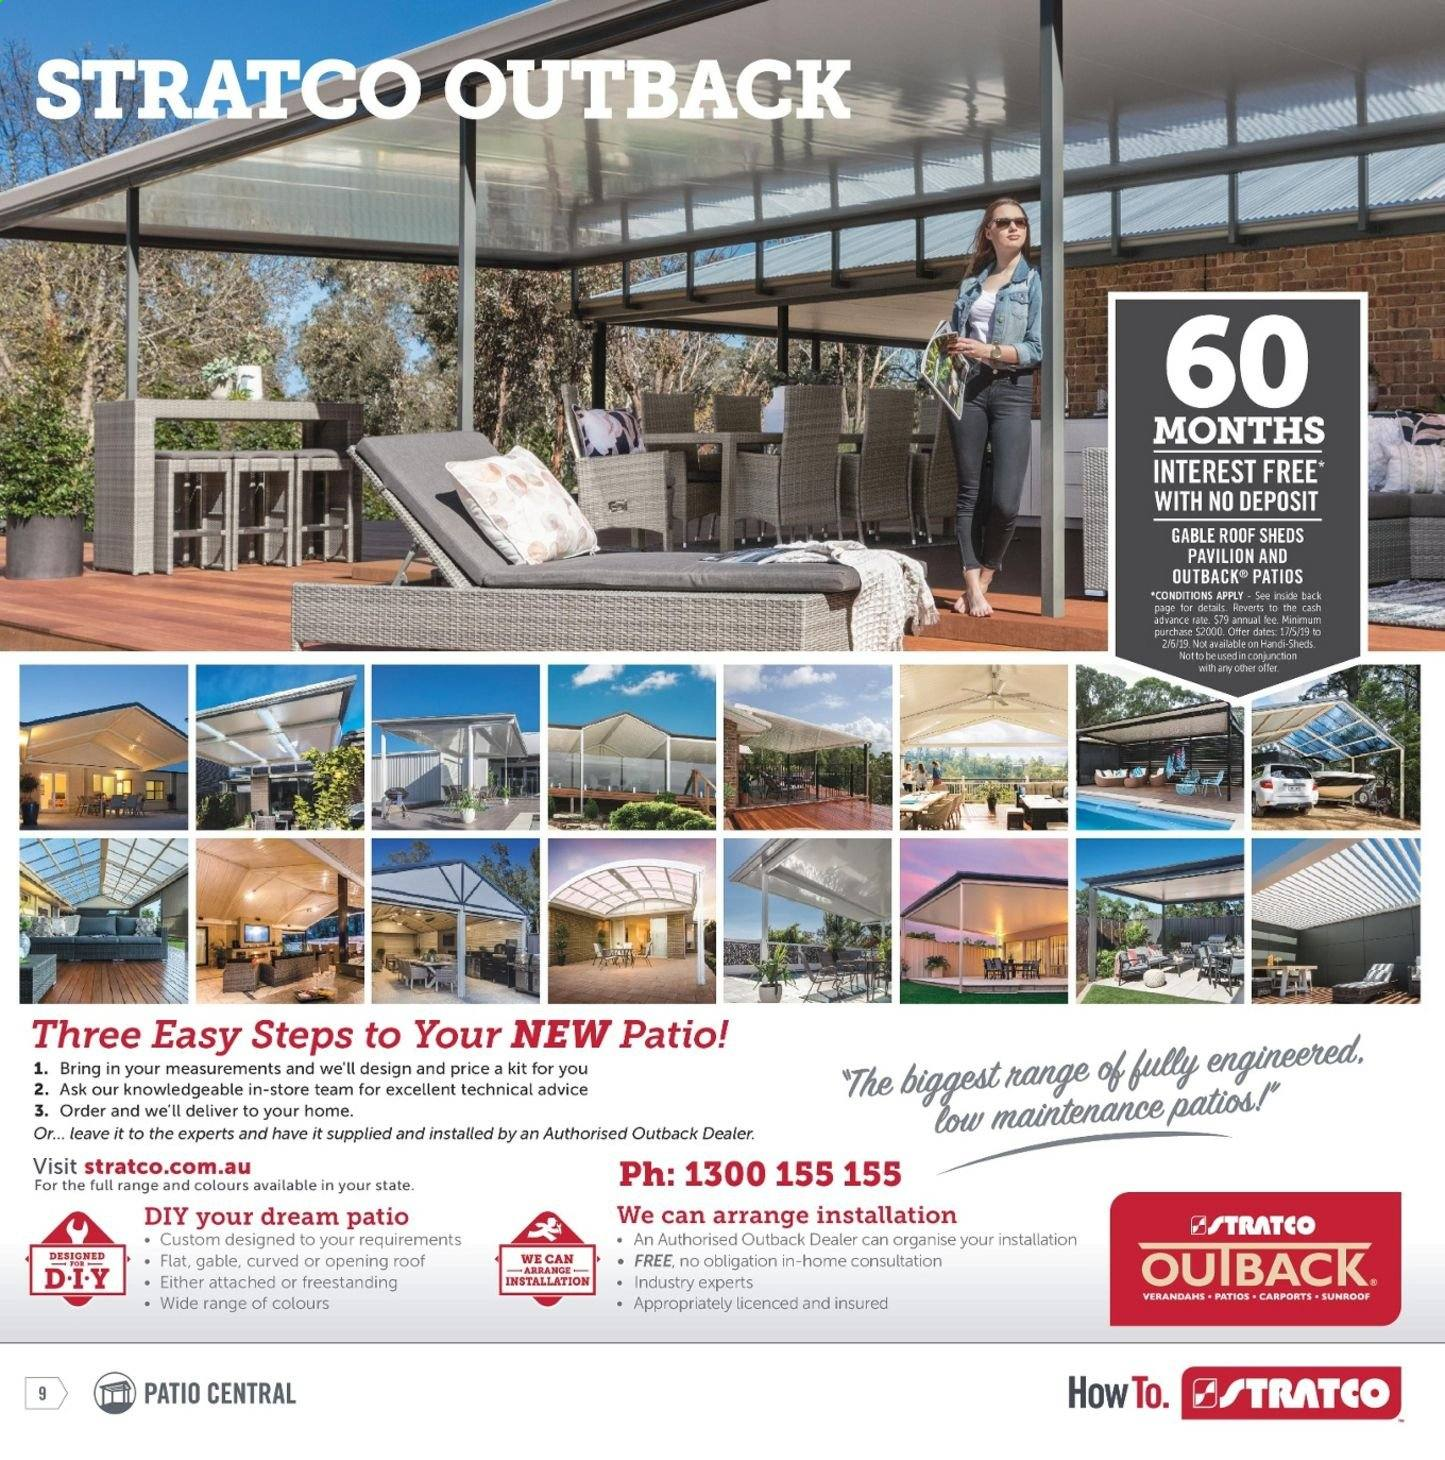 Stratco catalogue and weekly specials 10 5 2019 - 2 6 2019 | Au